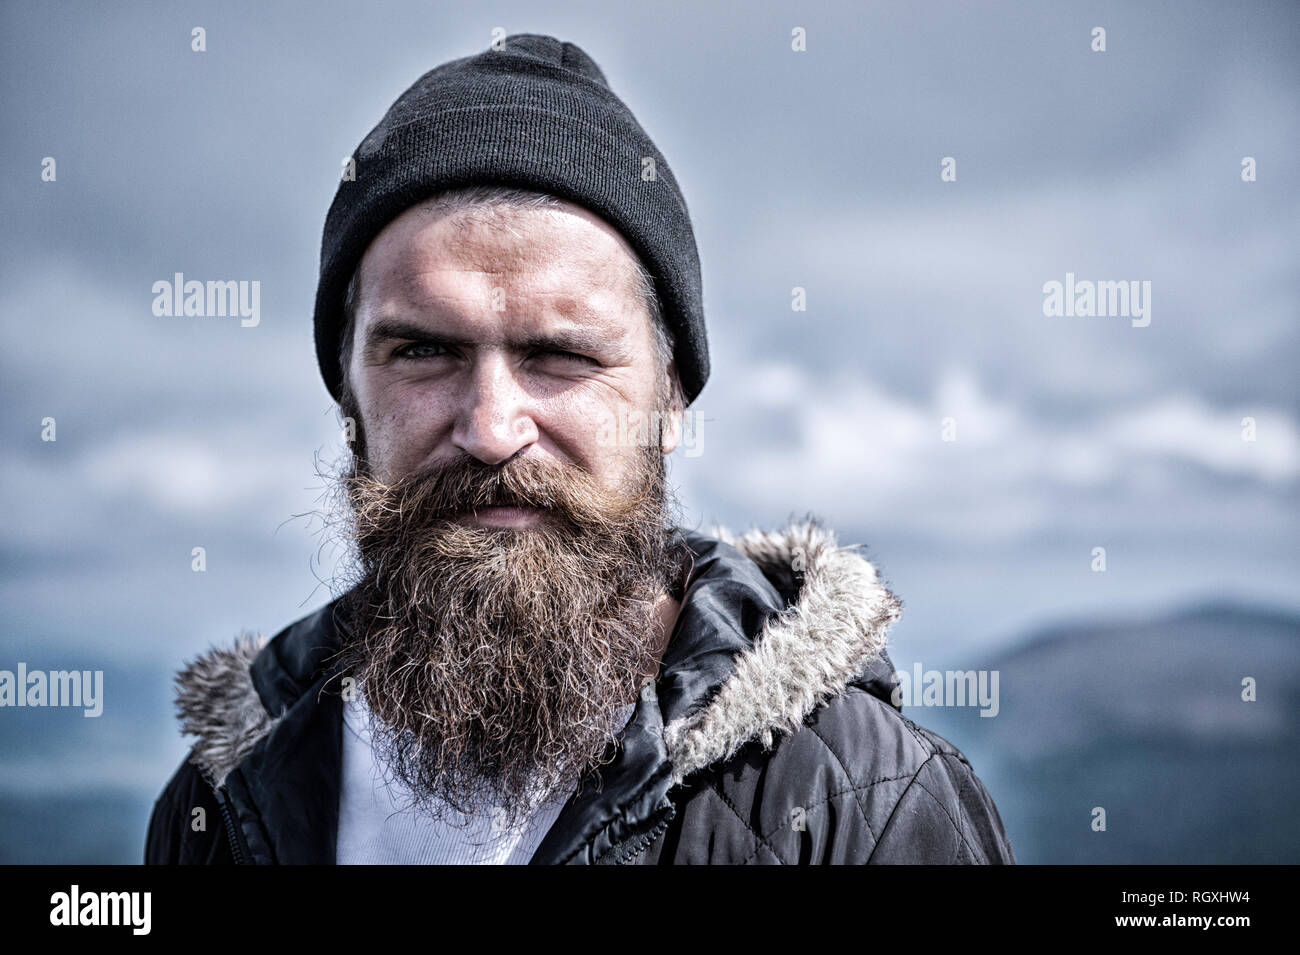 Man with long beard and mustache wears hat. Hipster on strict face with beard looks brutally while hiking. Masculinity concept. Man with brutal bearded appearance, brutal unshaven man looks untidy. - Stock Image